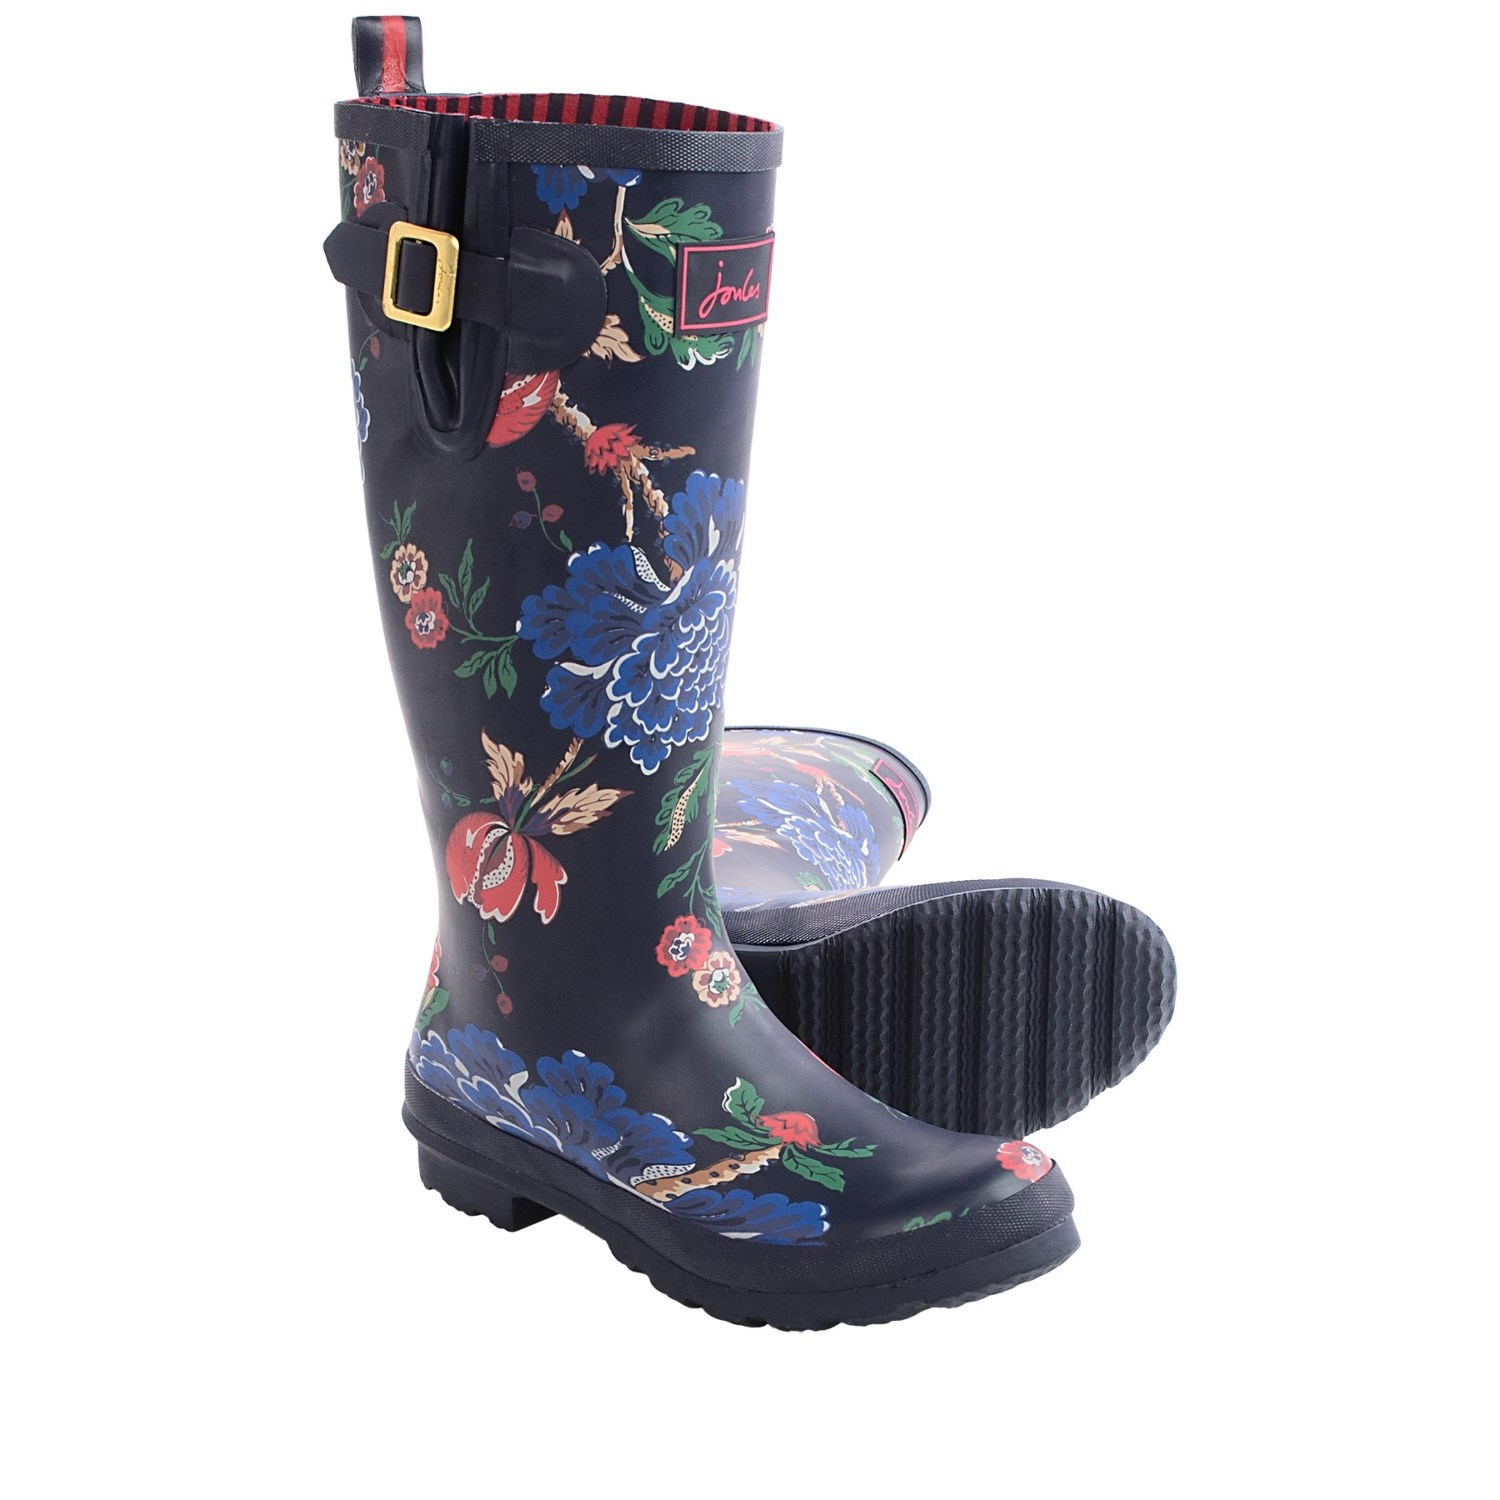 Awesome Rain Boots The Burberry Birkback Rain Boot Take The Fashion Trend To